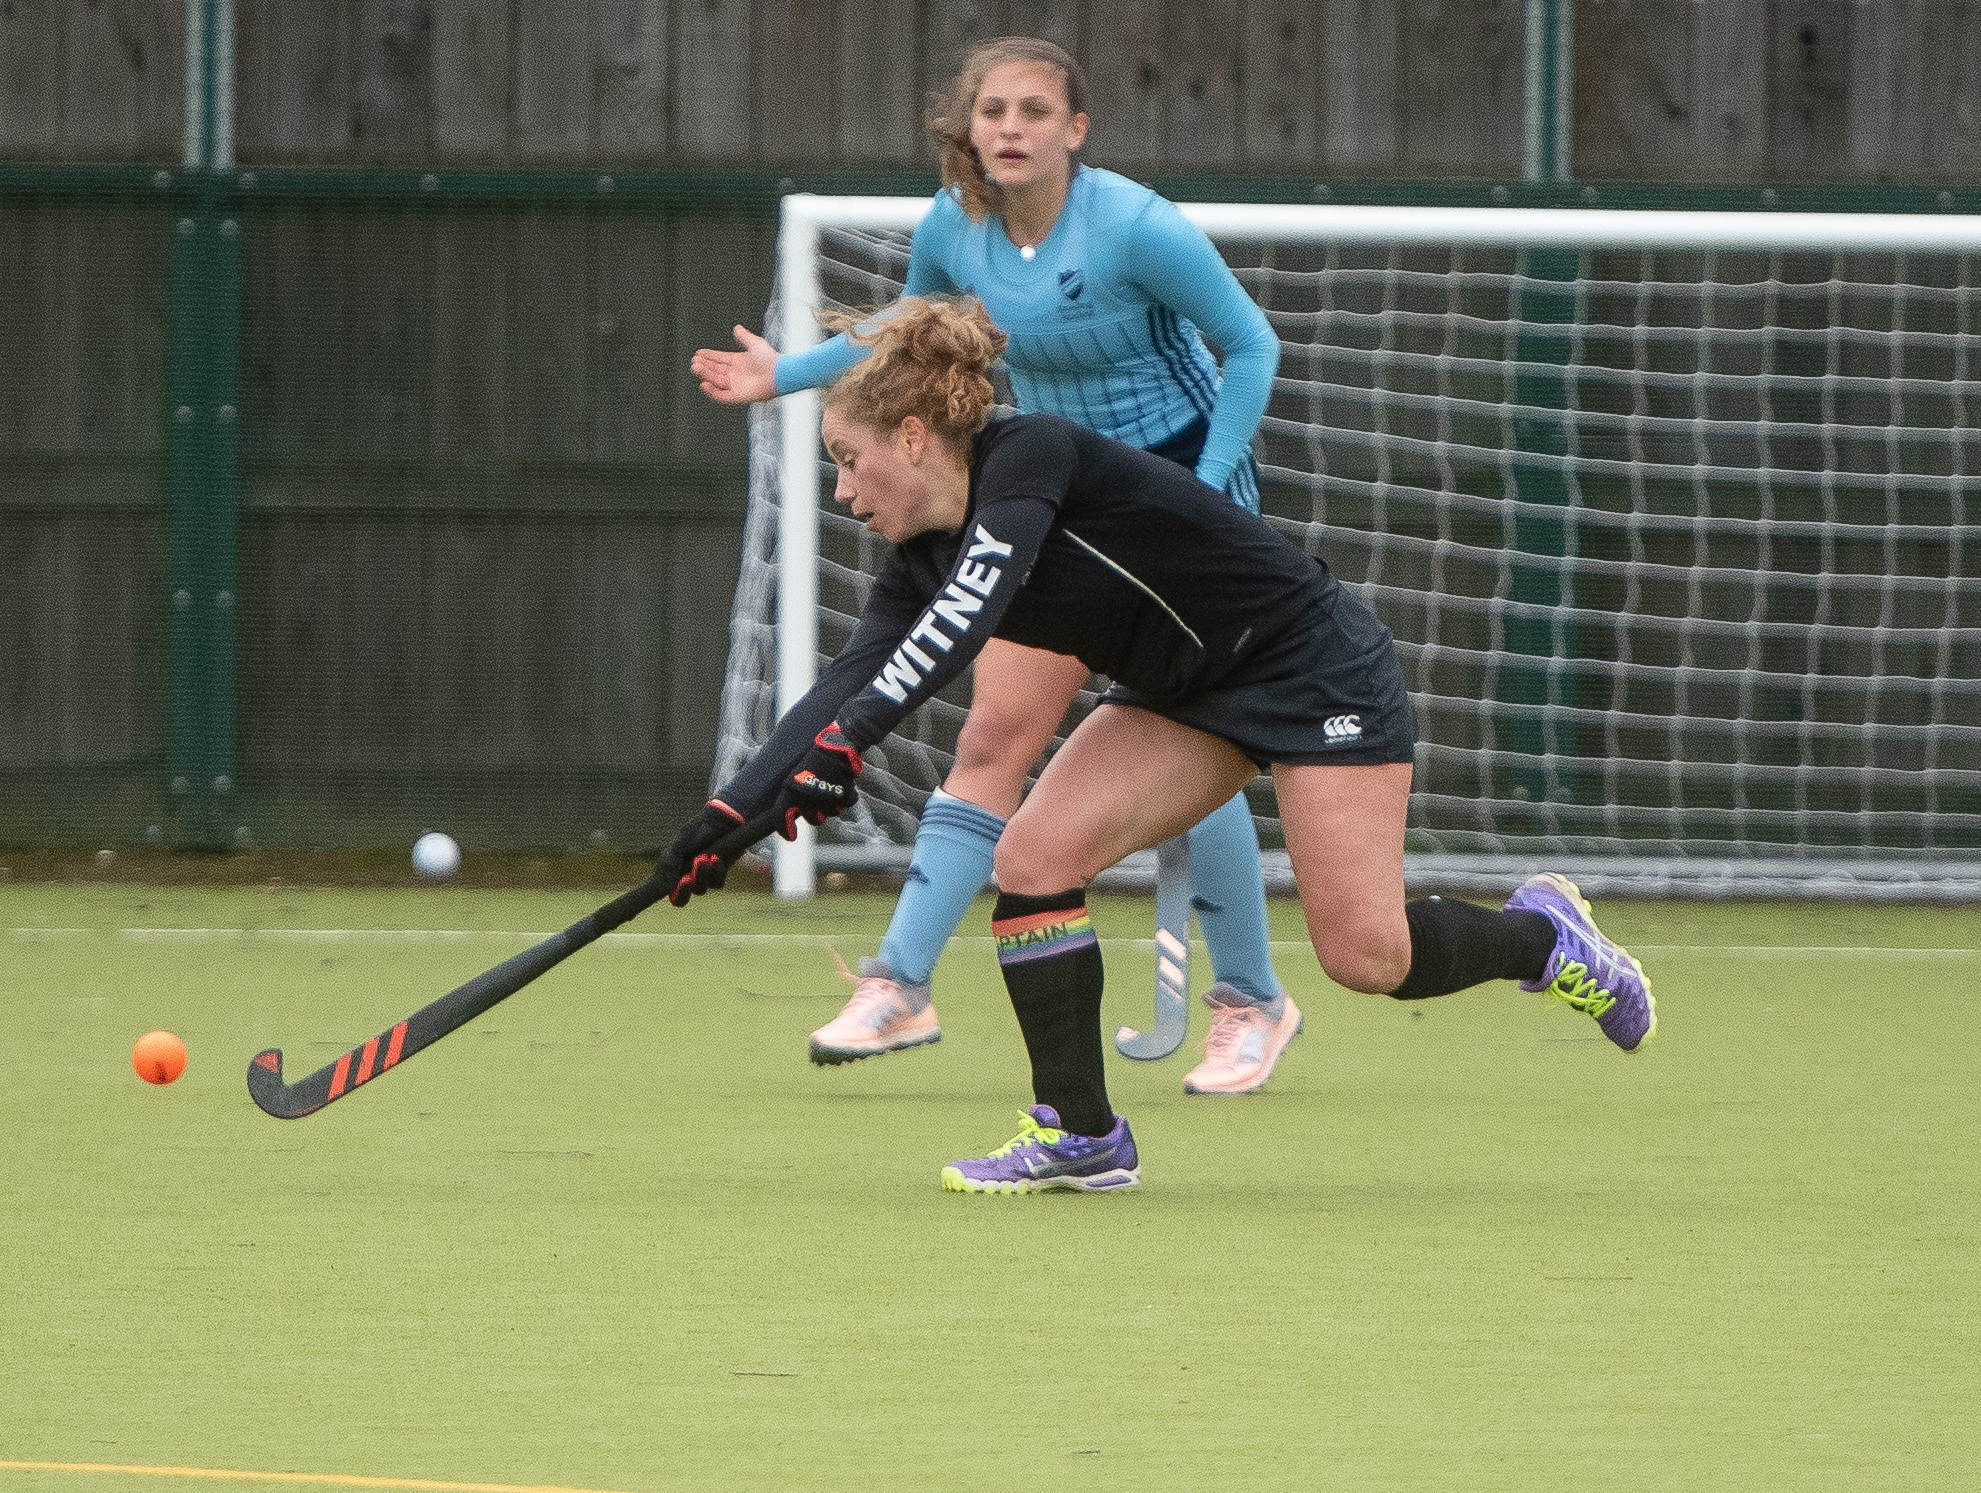 HOCKEY: Sadie Lapper stars in Witney win + Oxon club reports and results - Oxford Mail